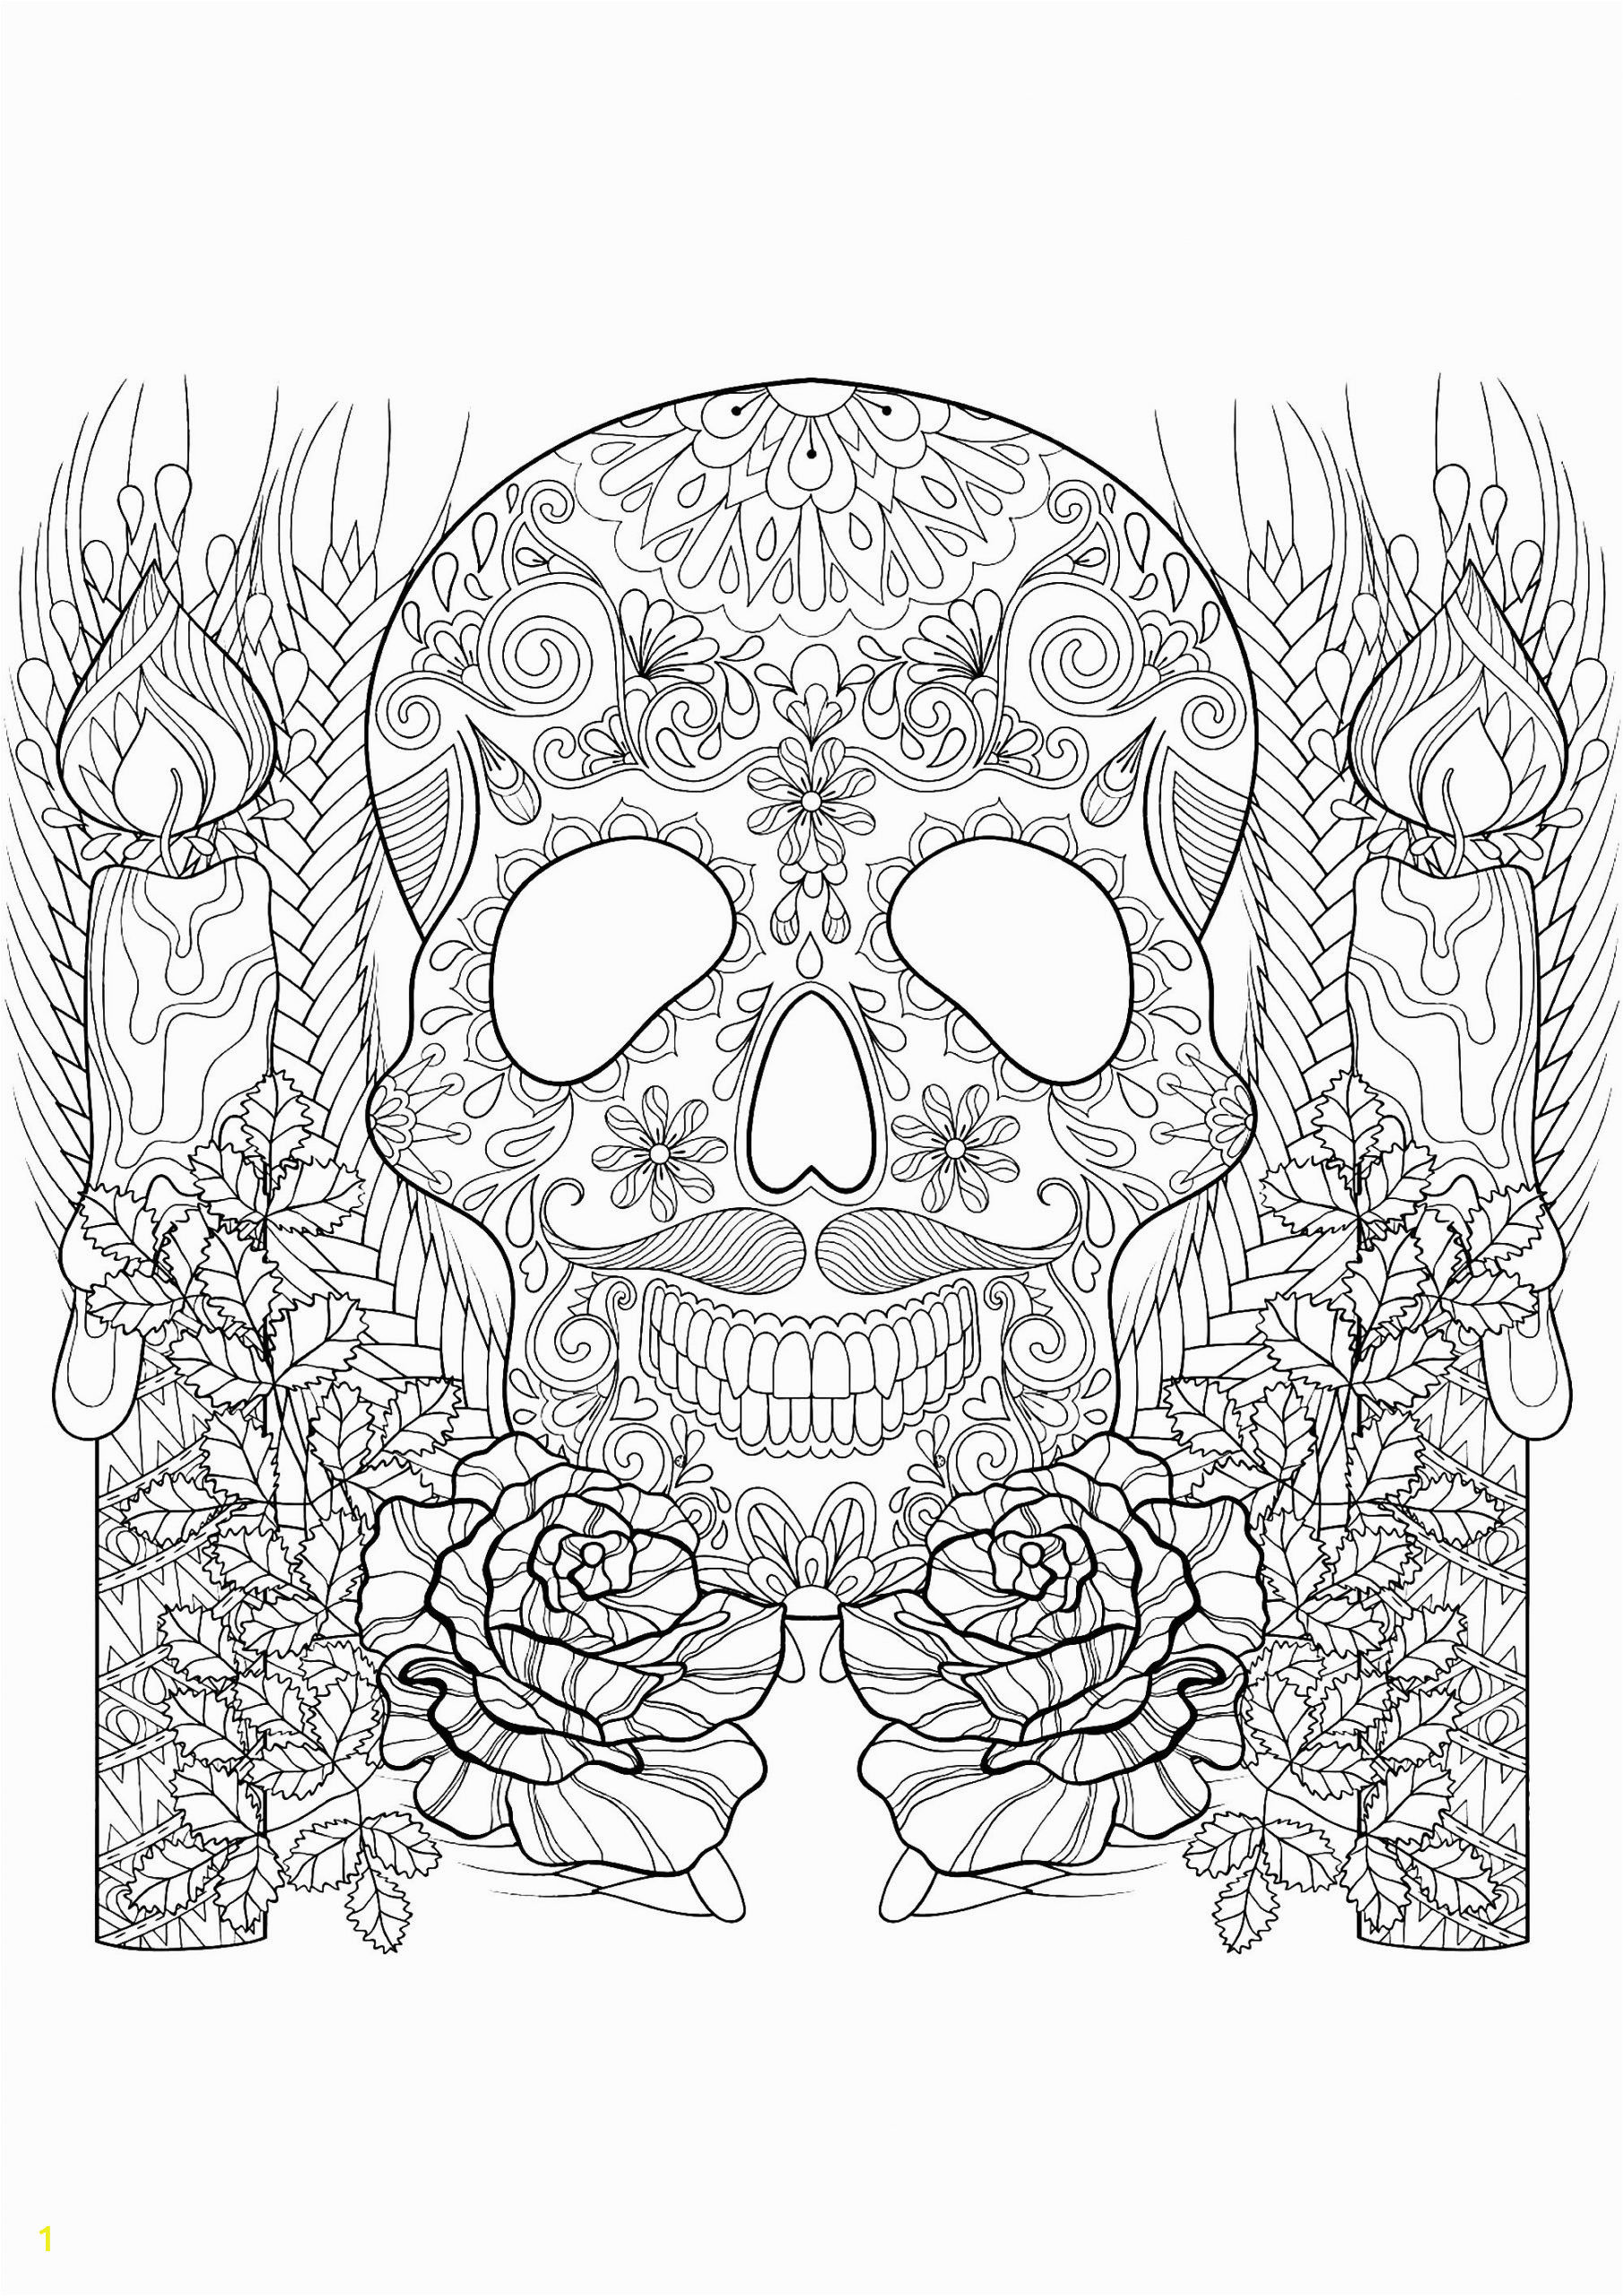 phenomenal skeleton coloring pages color page skull and candles for halloween adults crafts scaled